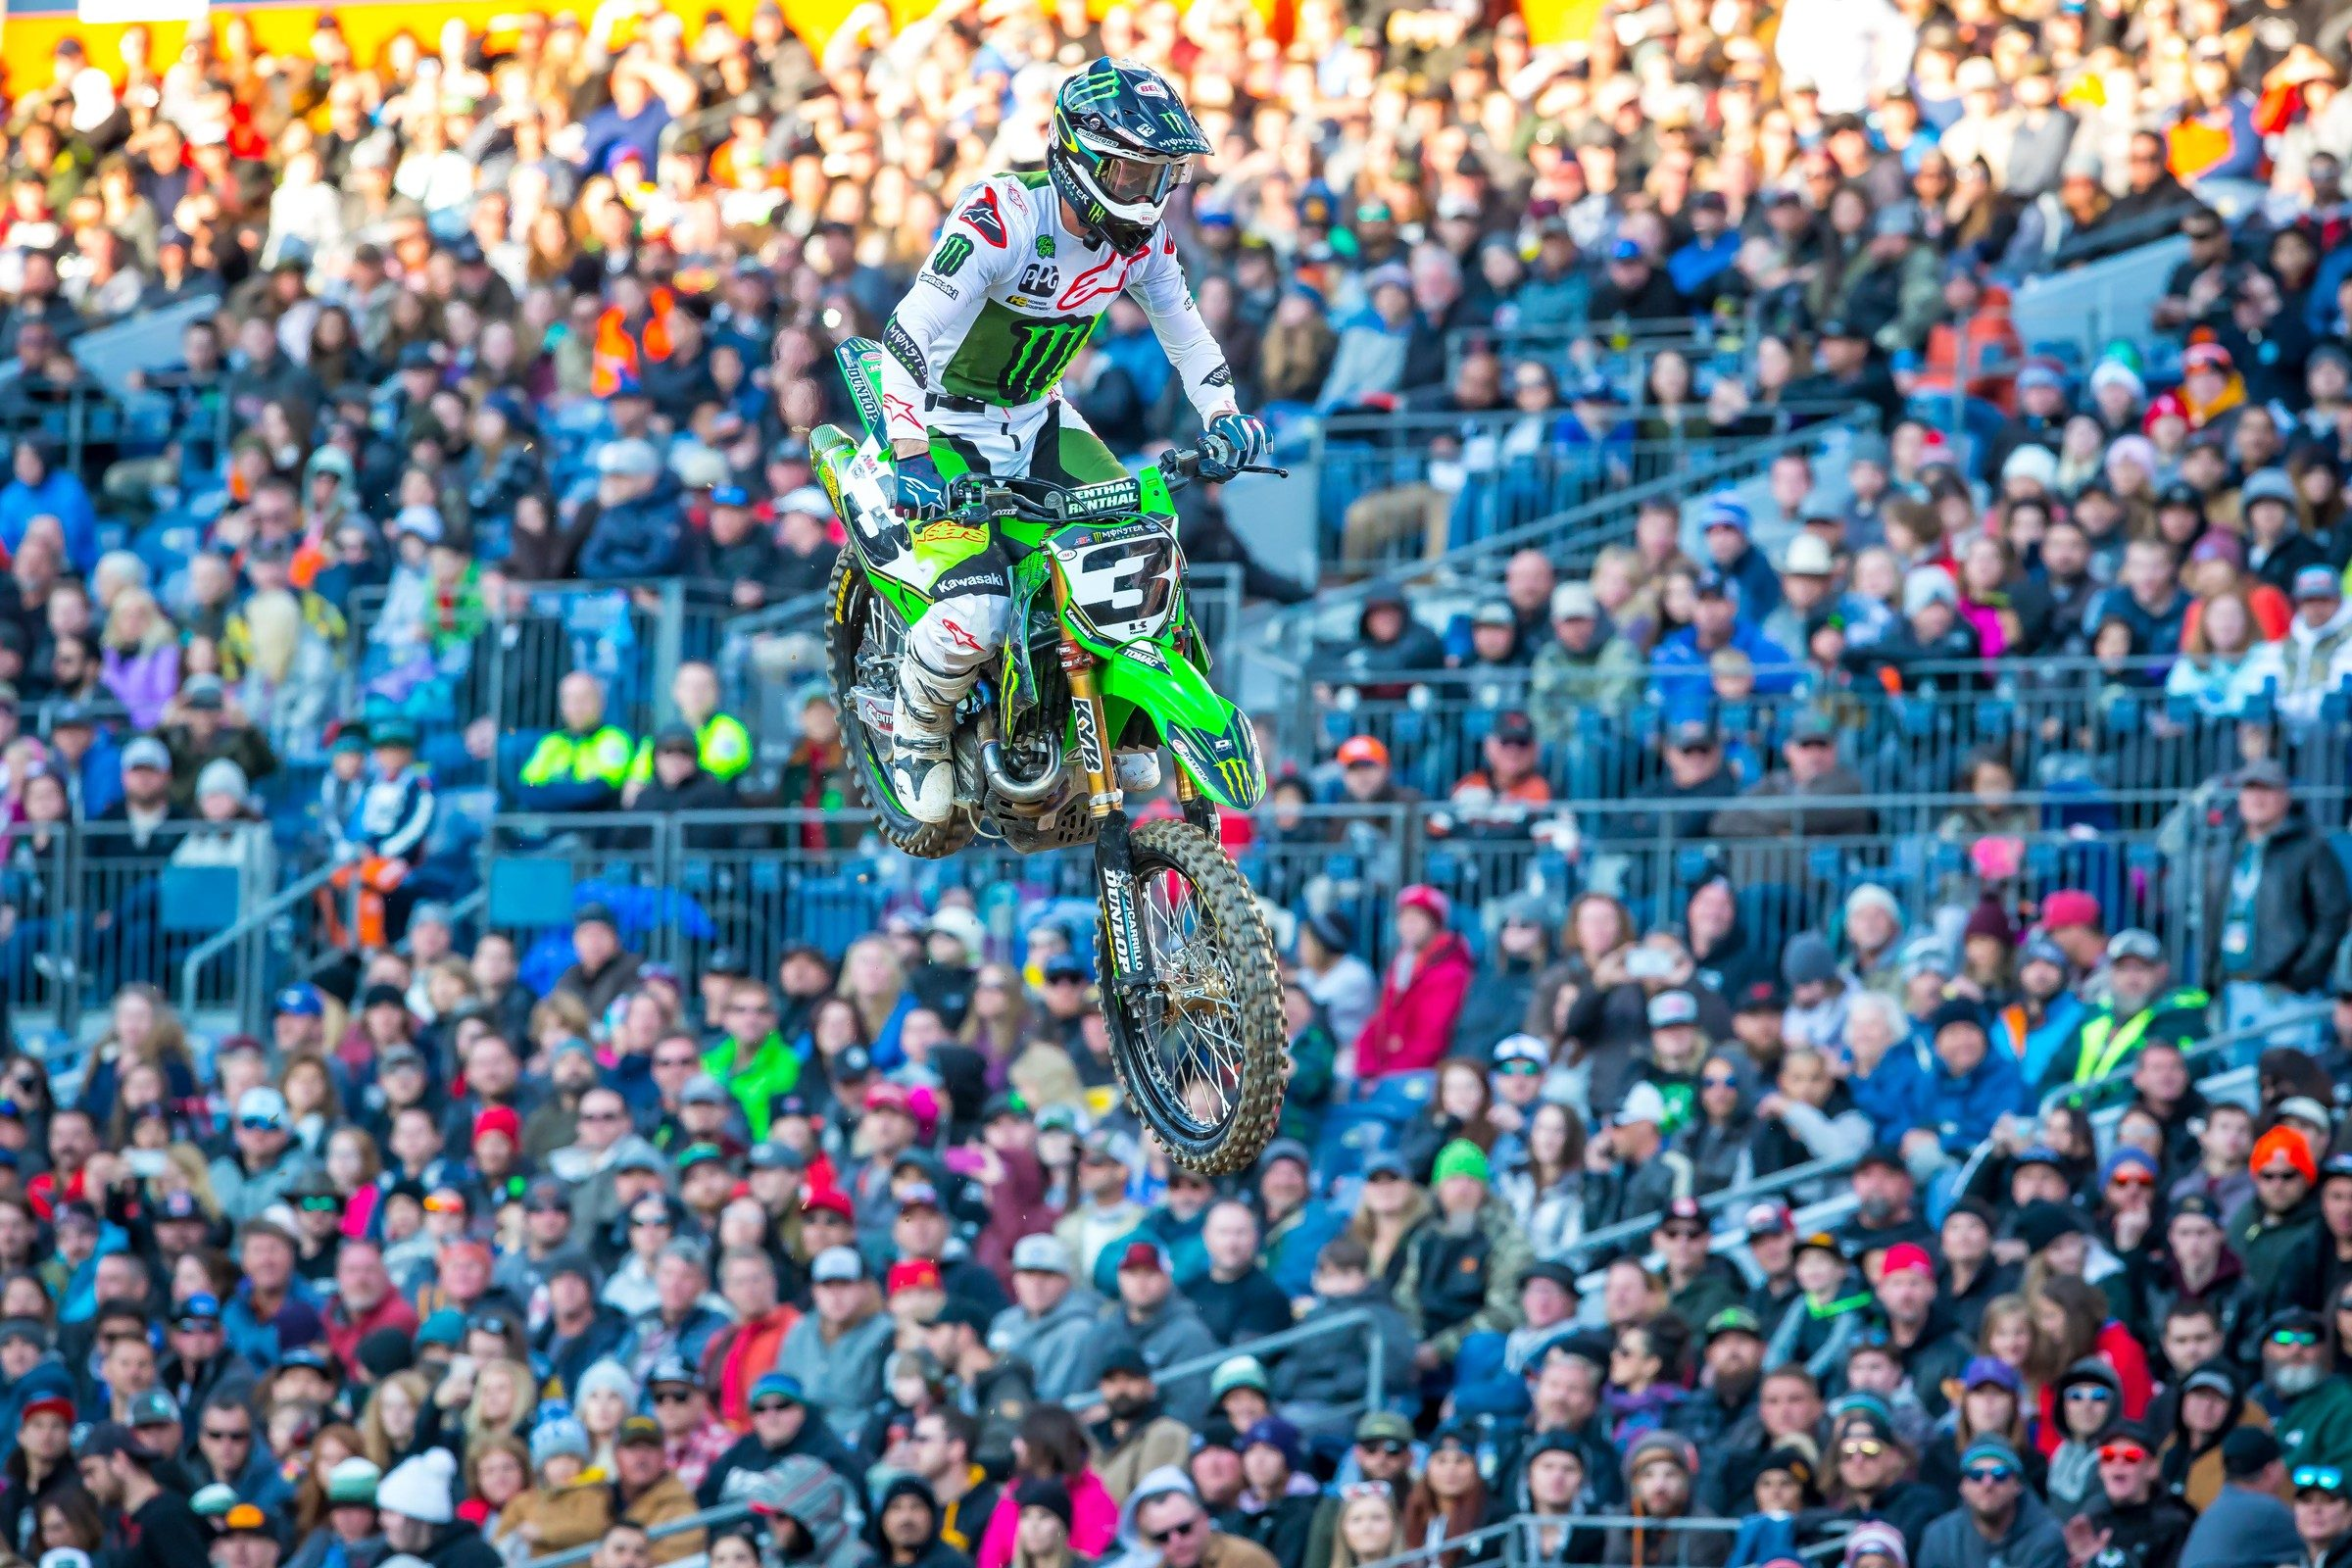 2022 Monster Energy AMA Supercross Schedule Unveiled